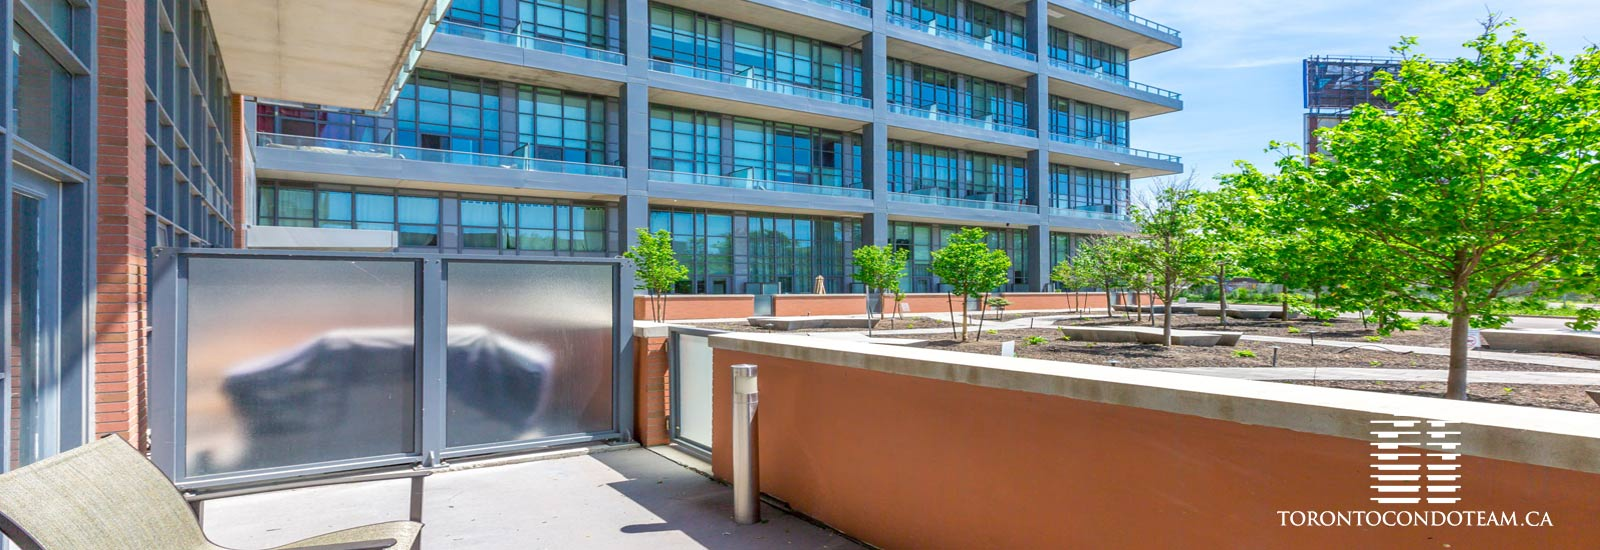 5 Hanna Avenue Condos For Sale